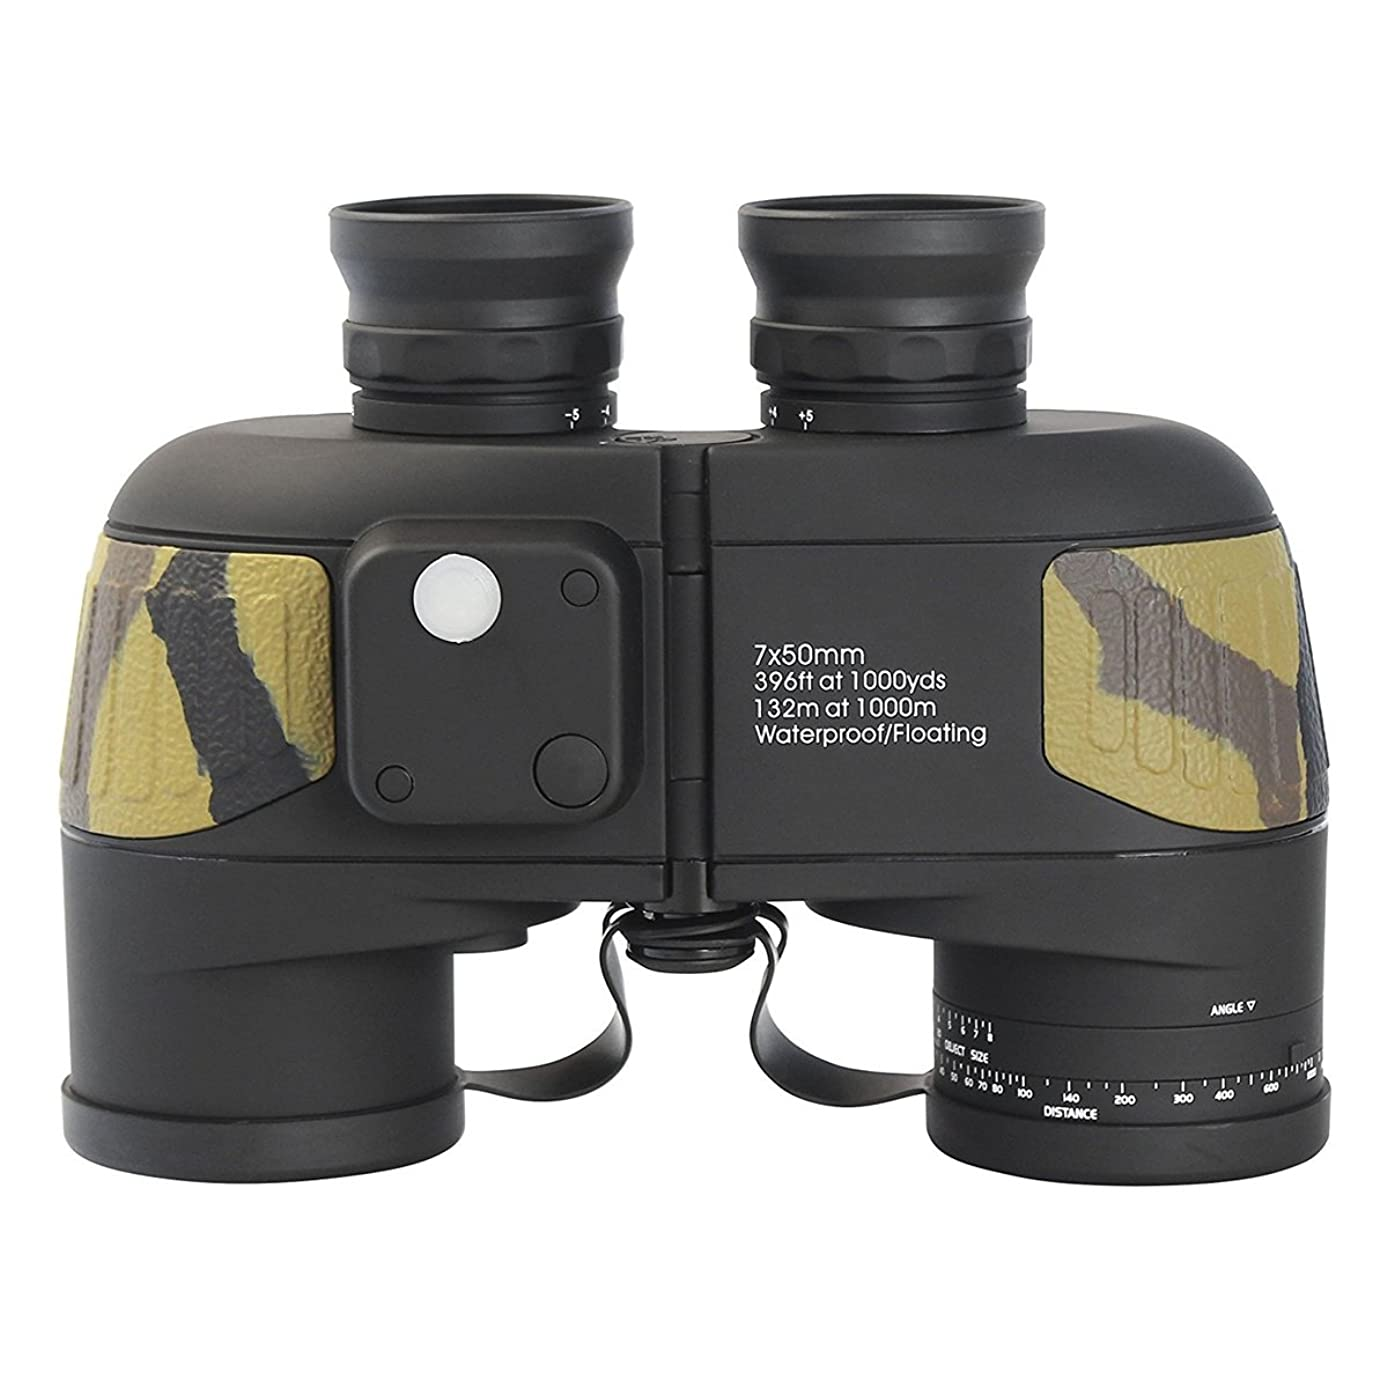 SHIJIAN Marine Binoculars with 7X Magnification and 50mm Objective Lens, 24 Mm Eye Relief, 6.8mm Exit Pupil, and Field of View is 396 Feet at 1000 Yards /132 Meters at 1000 Meters (Color : Yellow)